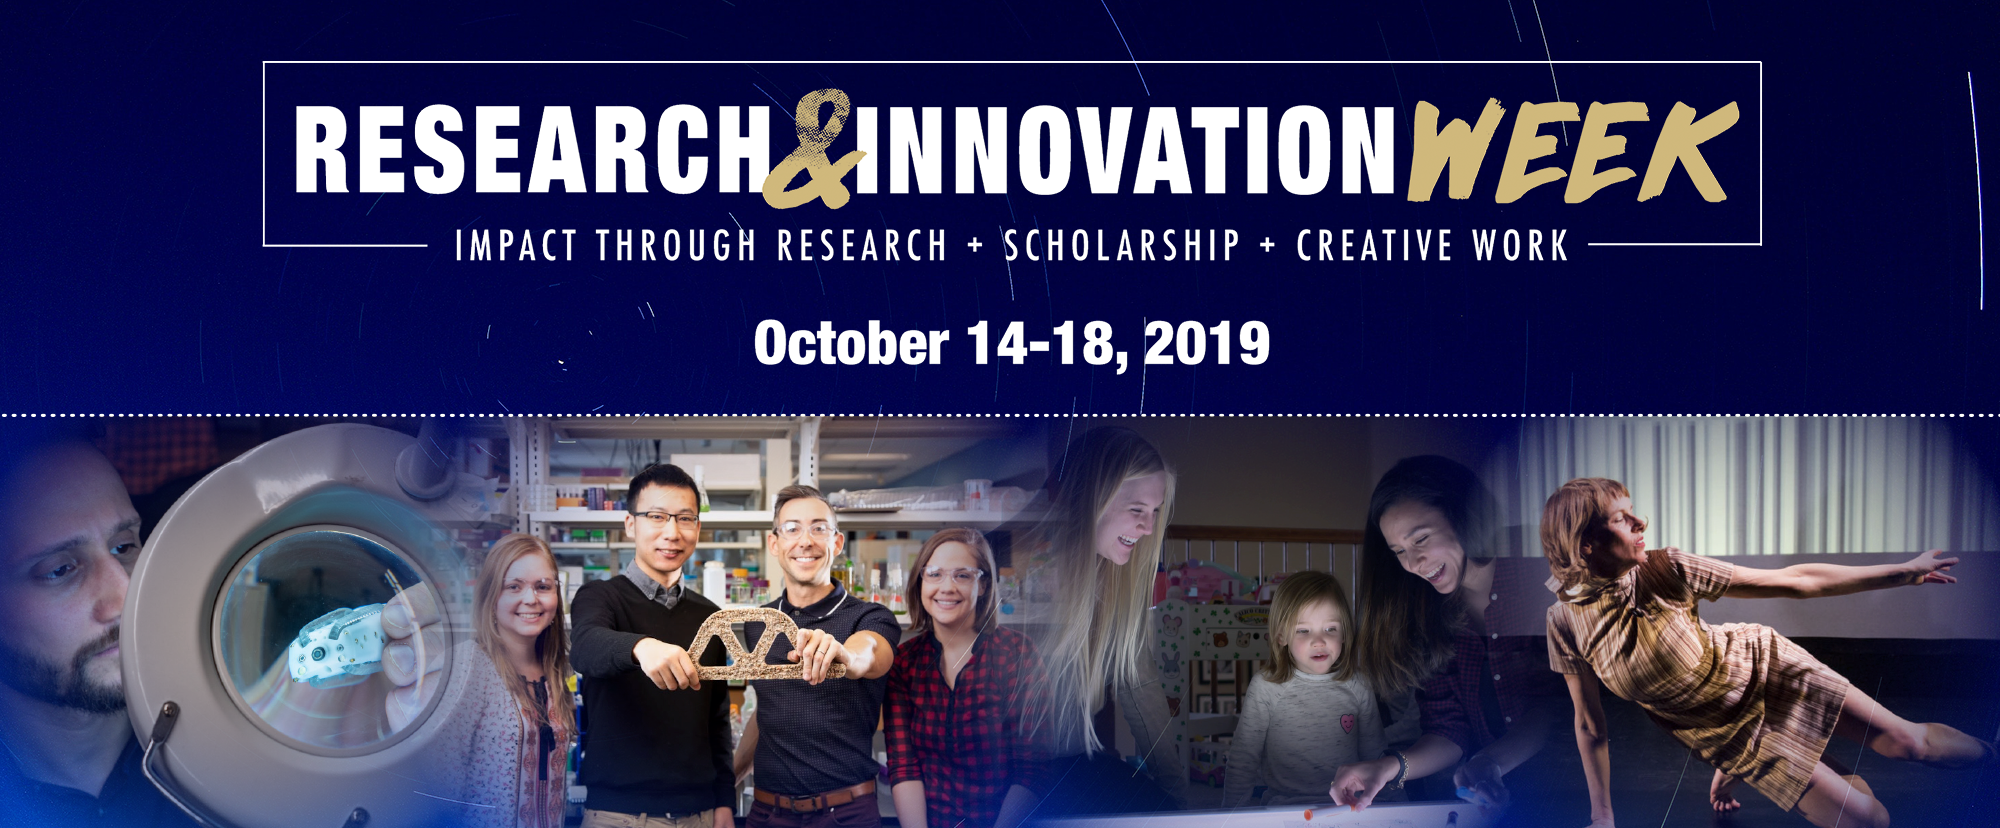 Expert panels, student showcases headline Research & Innovation Week October 14-18